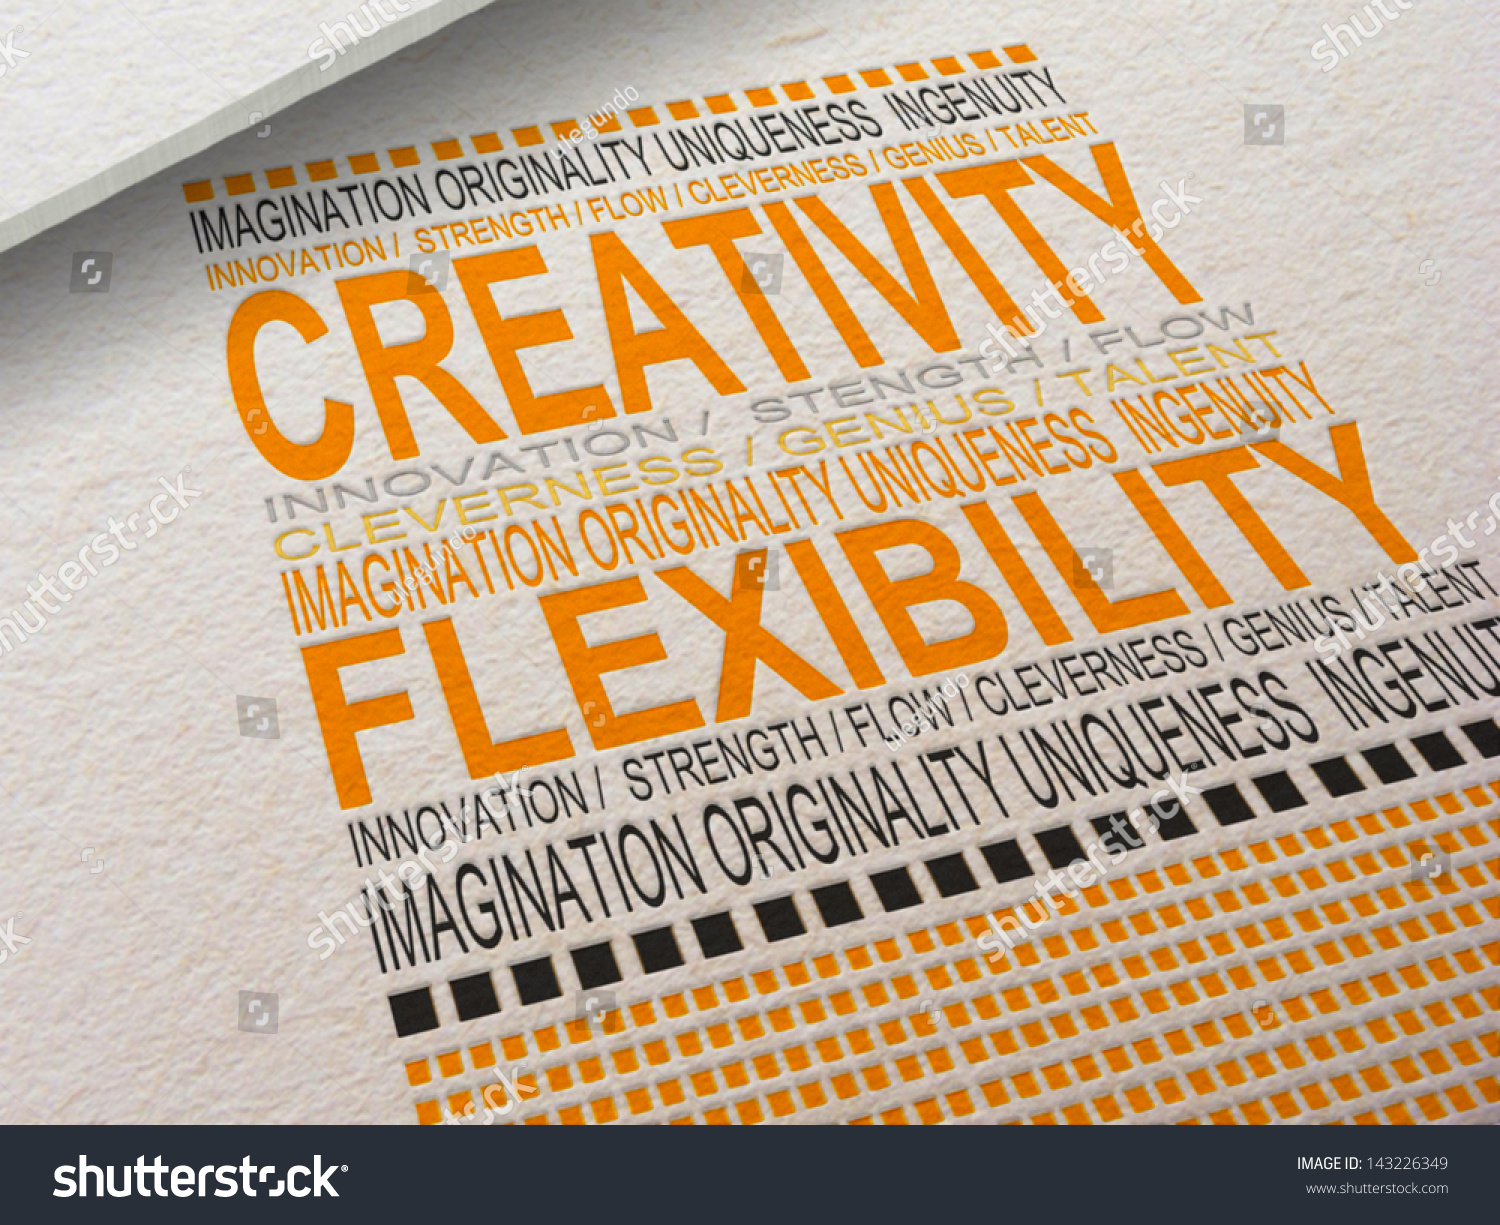 The Word Creativity Letter Pressed Into Paper Withociated Words Around It